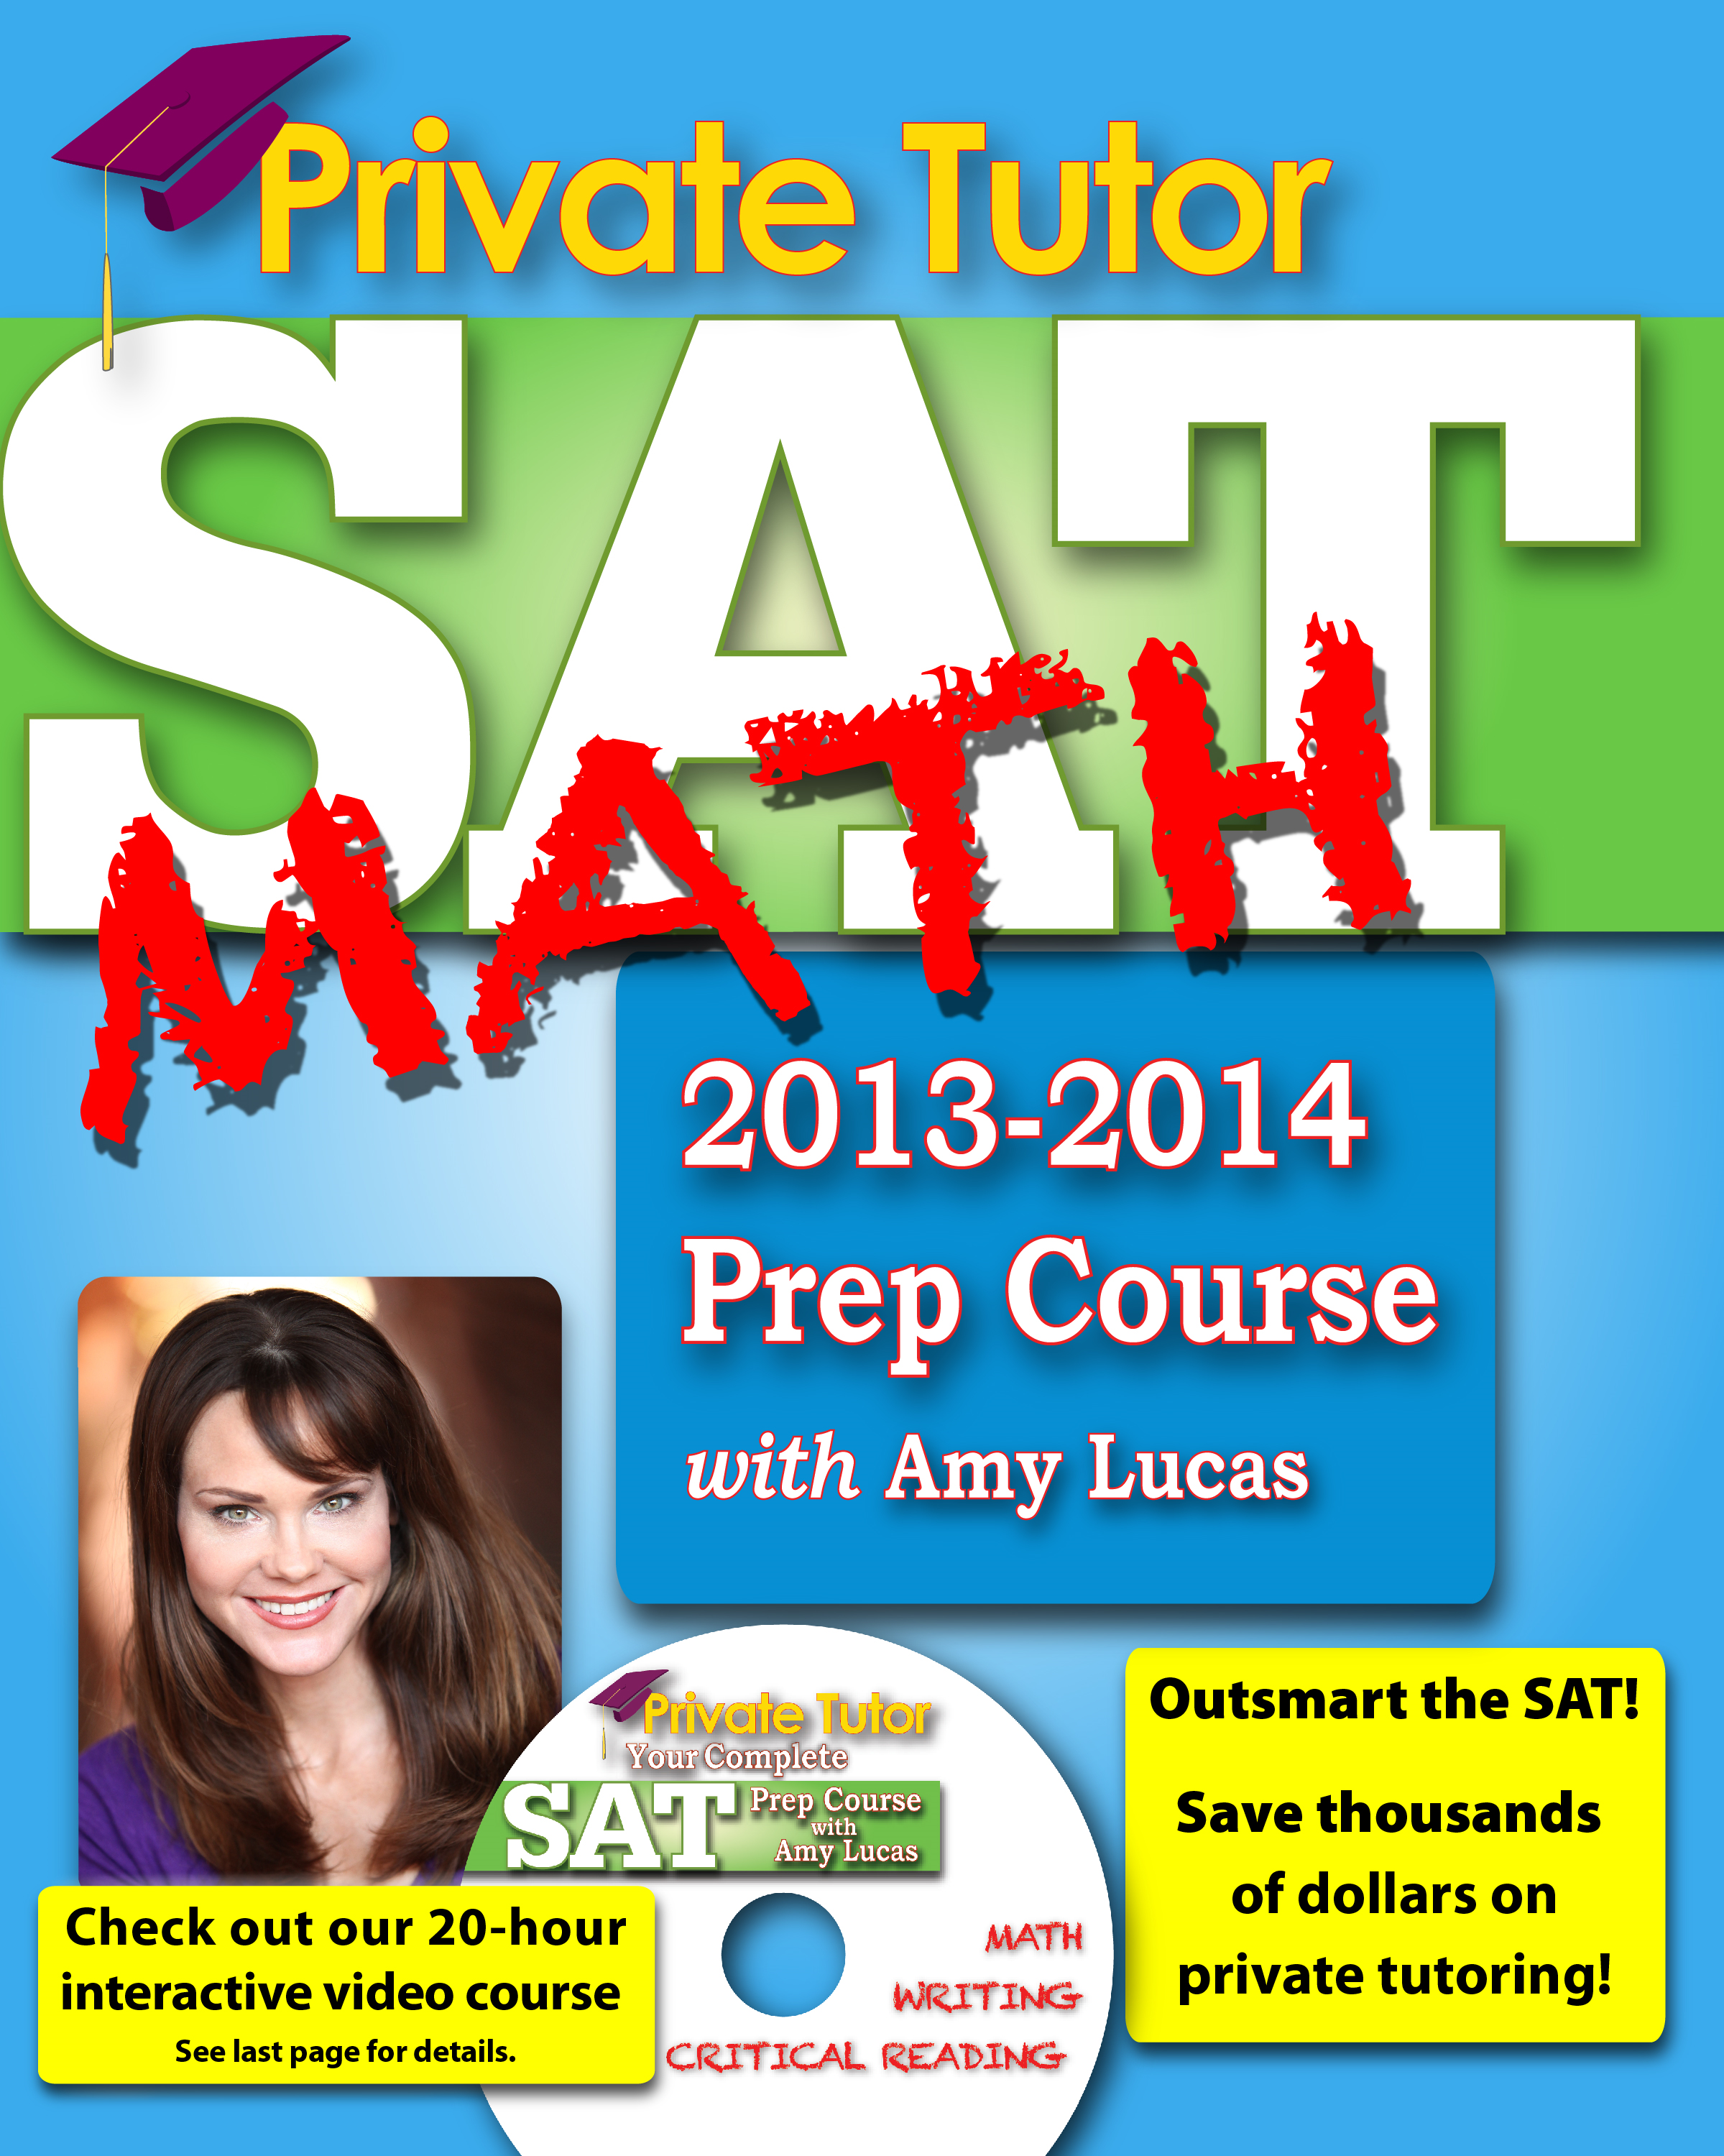 Private Tutor - SAT Math 2013-2014 Prep Course